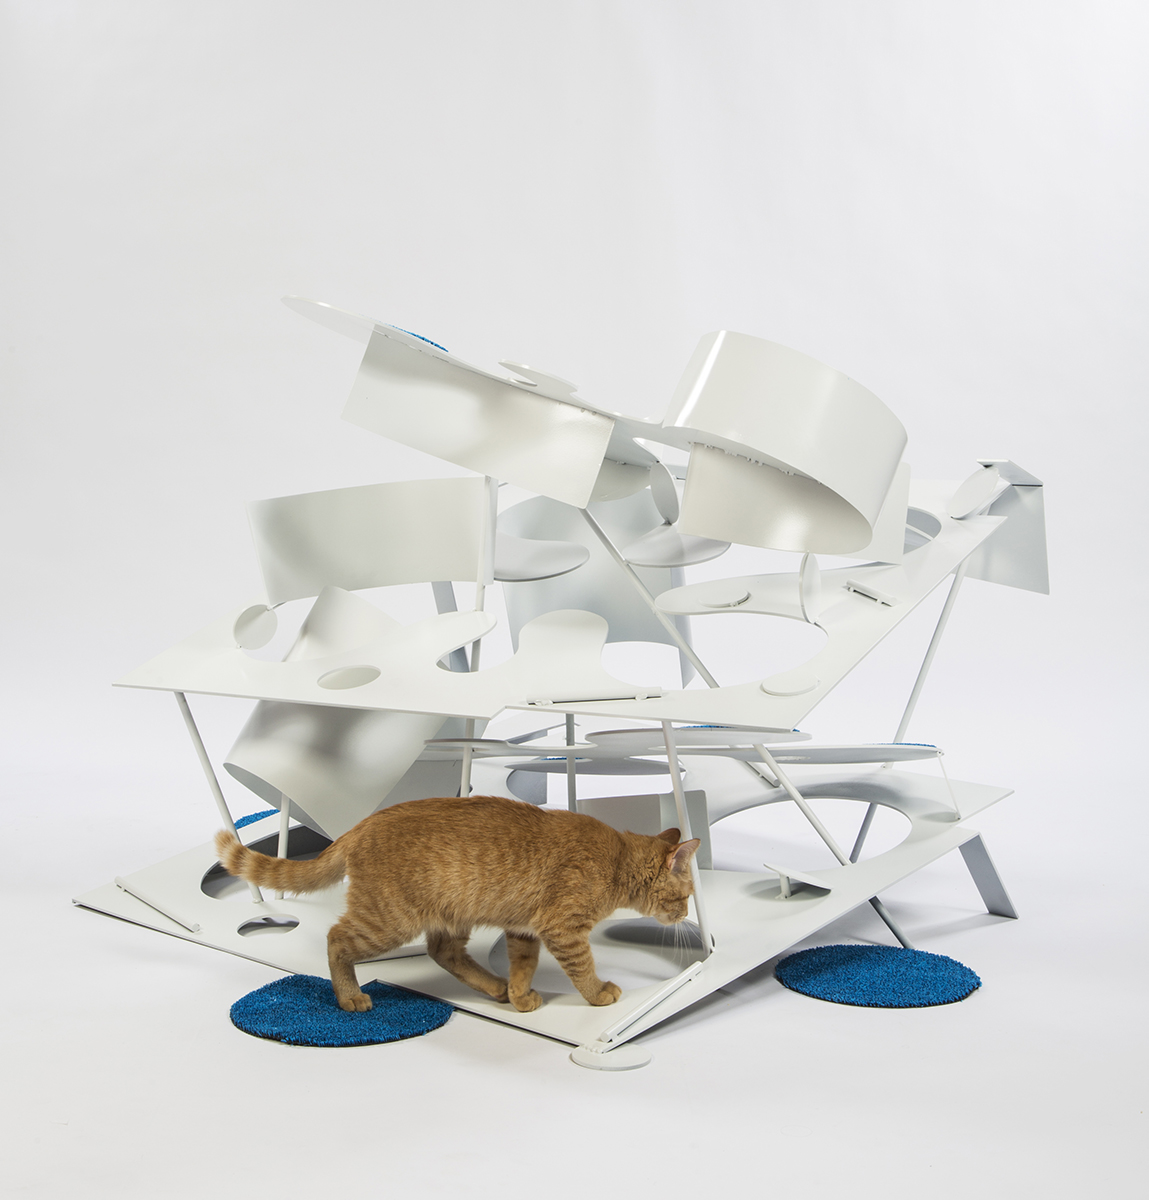 05-lehrer-architects-cat-shelter